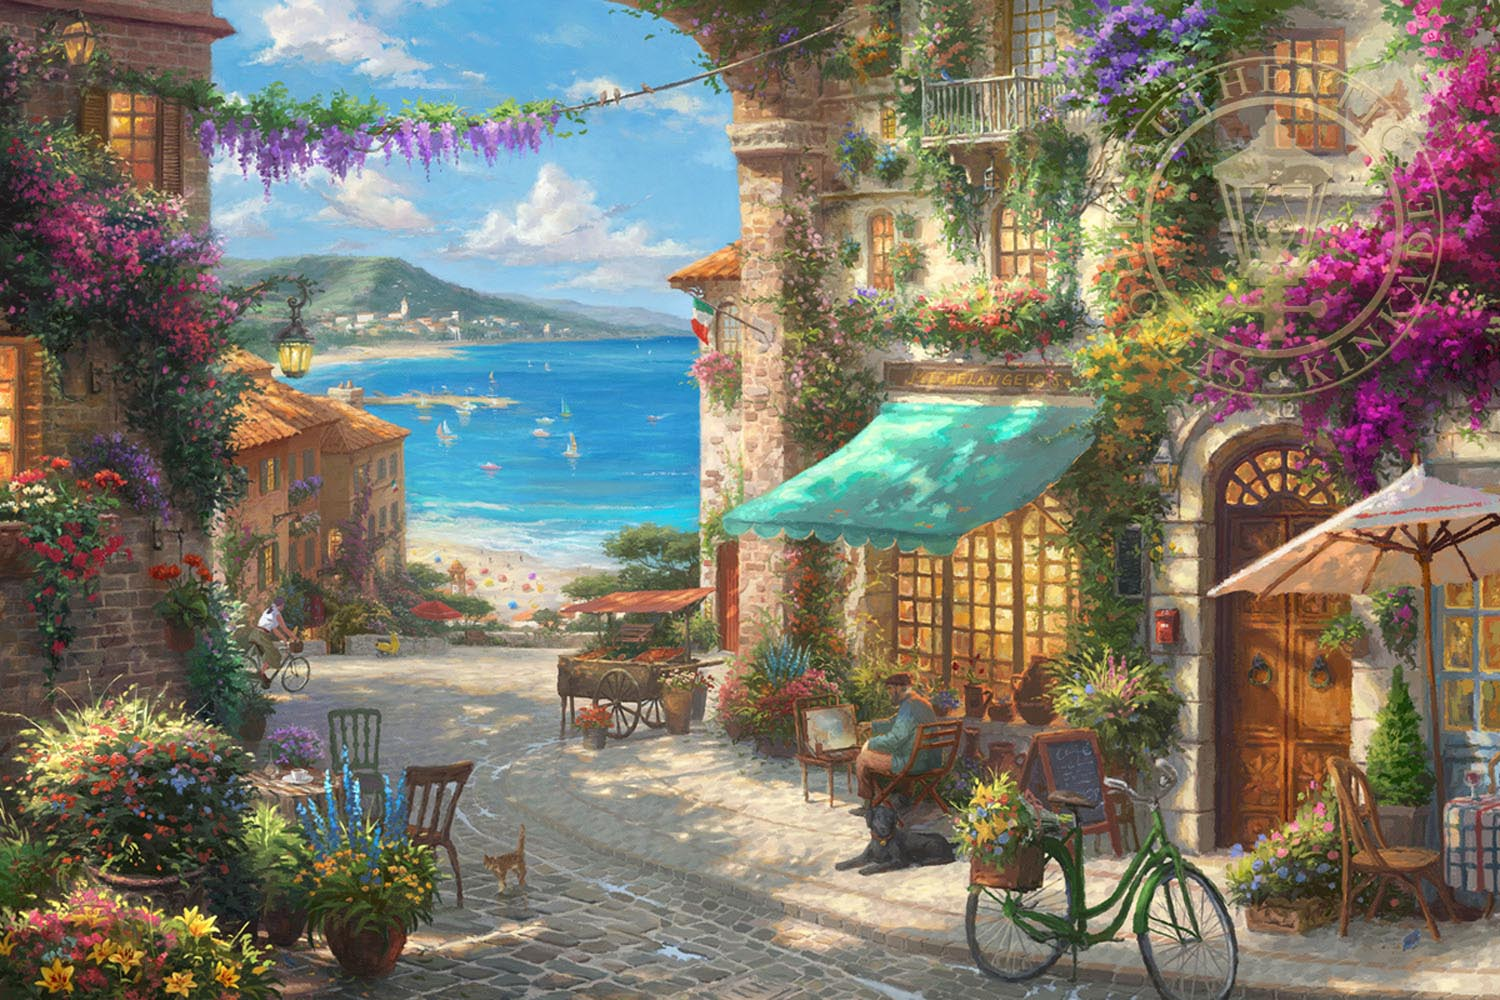 italian cafe paintings amp art thomas kinkade memphis gallery